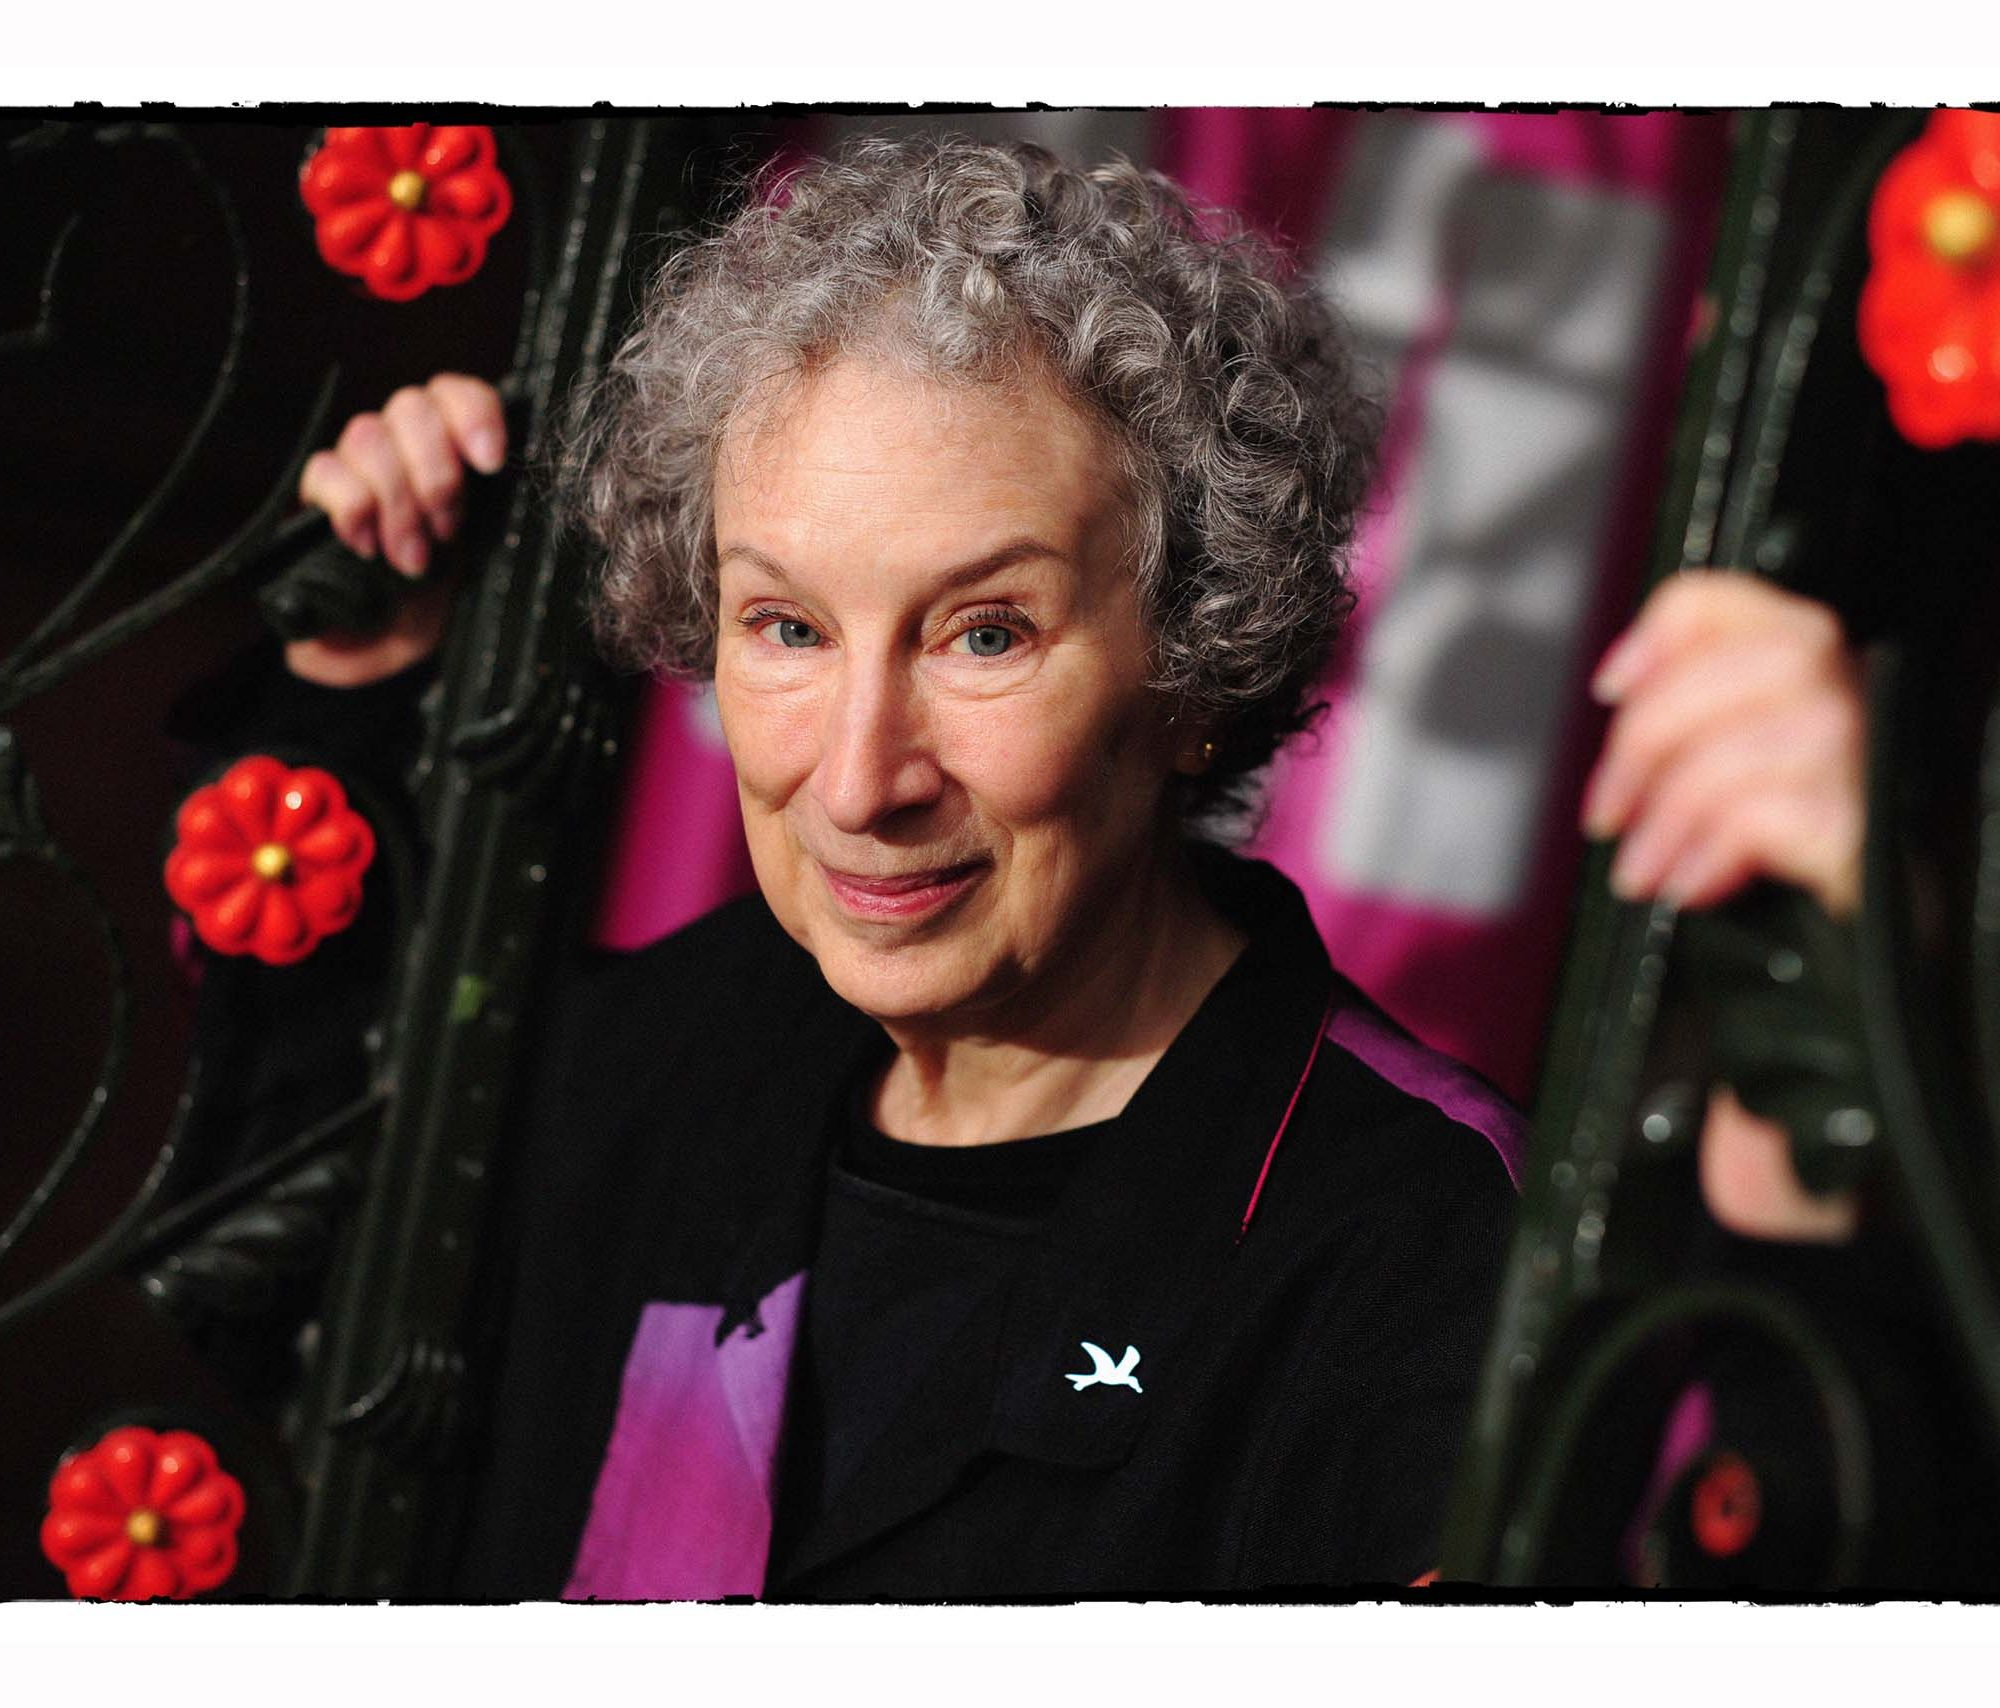 Booker Prize Winner 2019 Author Margaret Atwood The Testaments Handmaids Tale